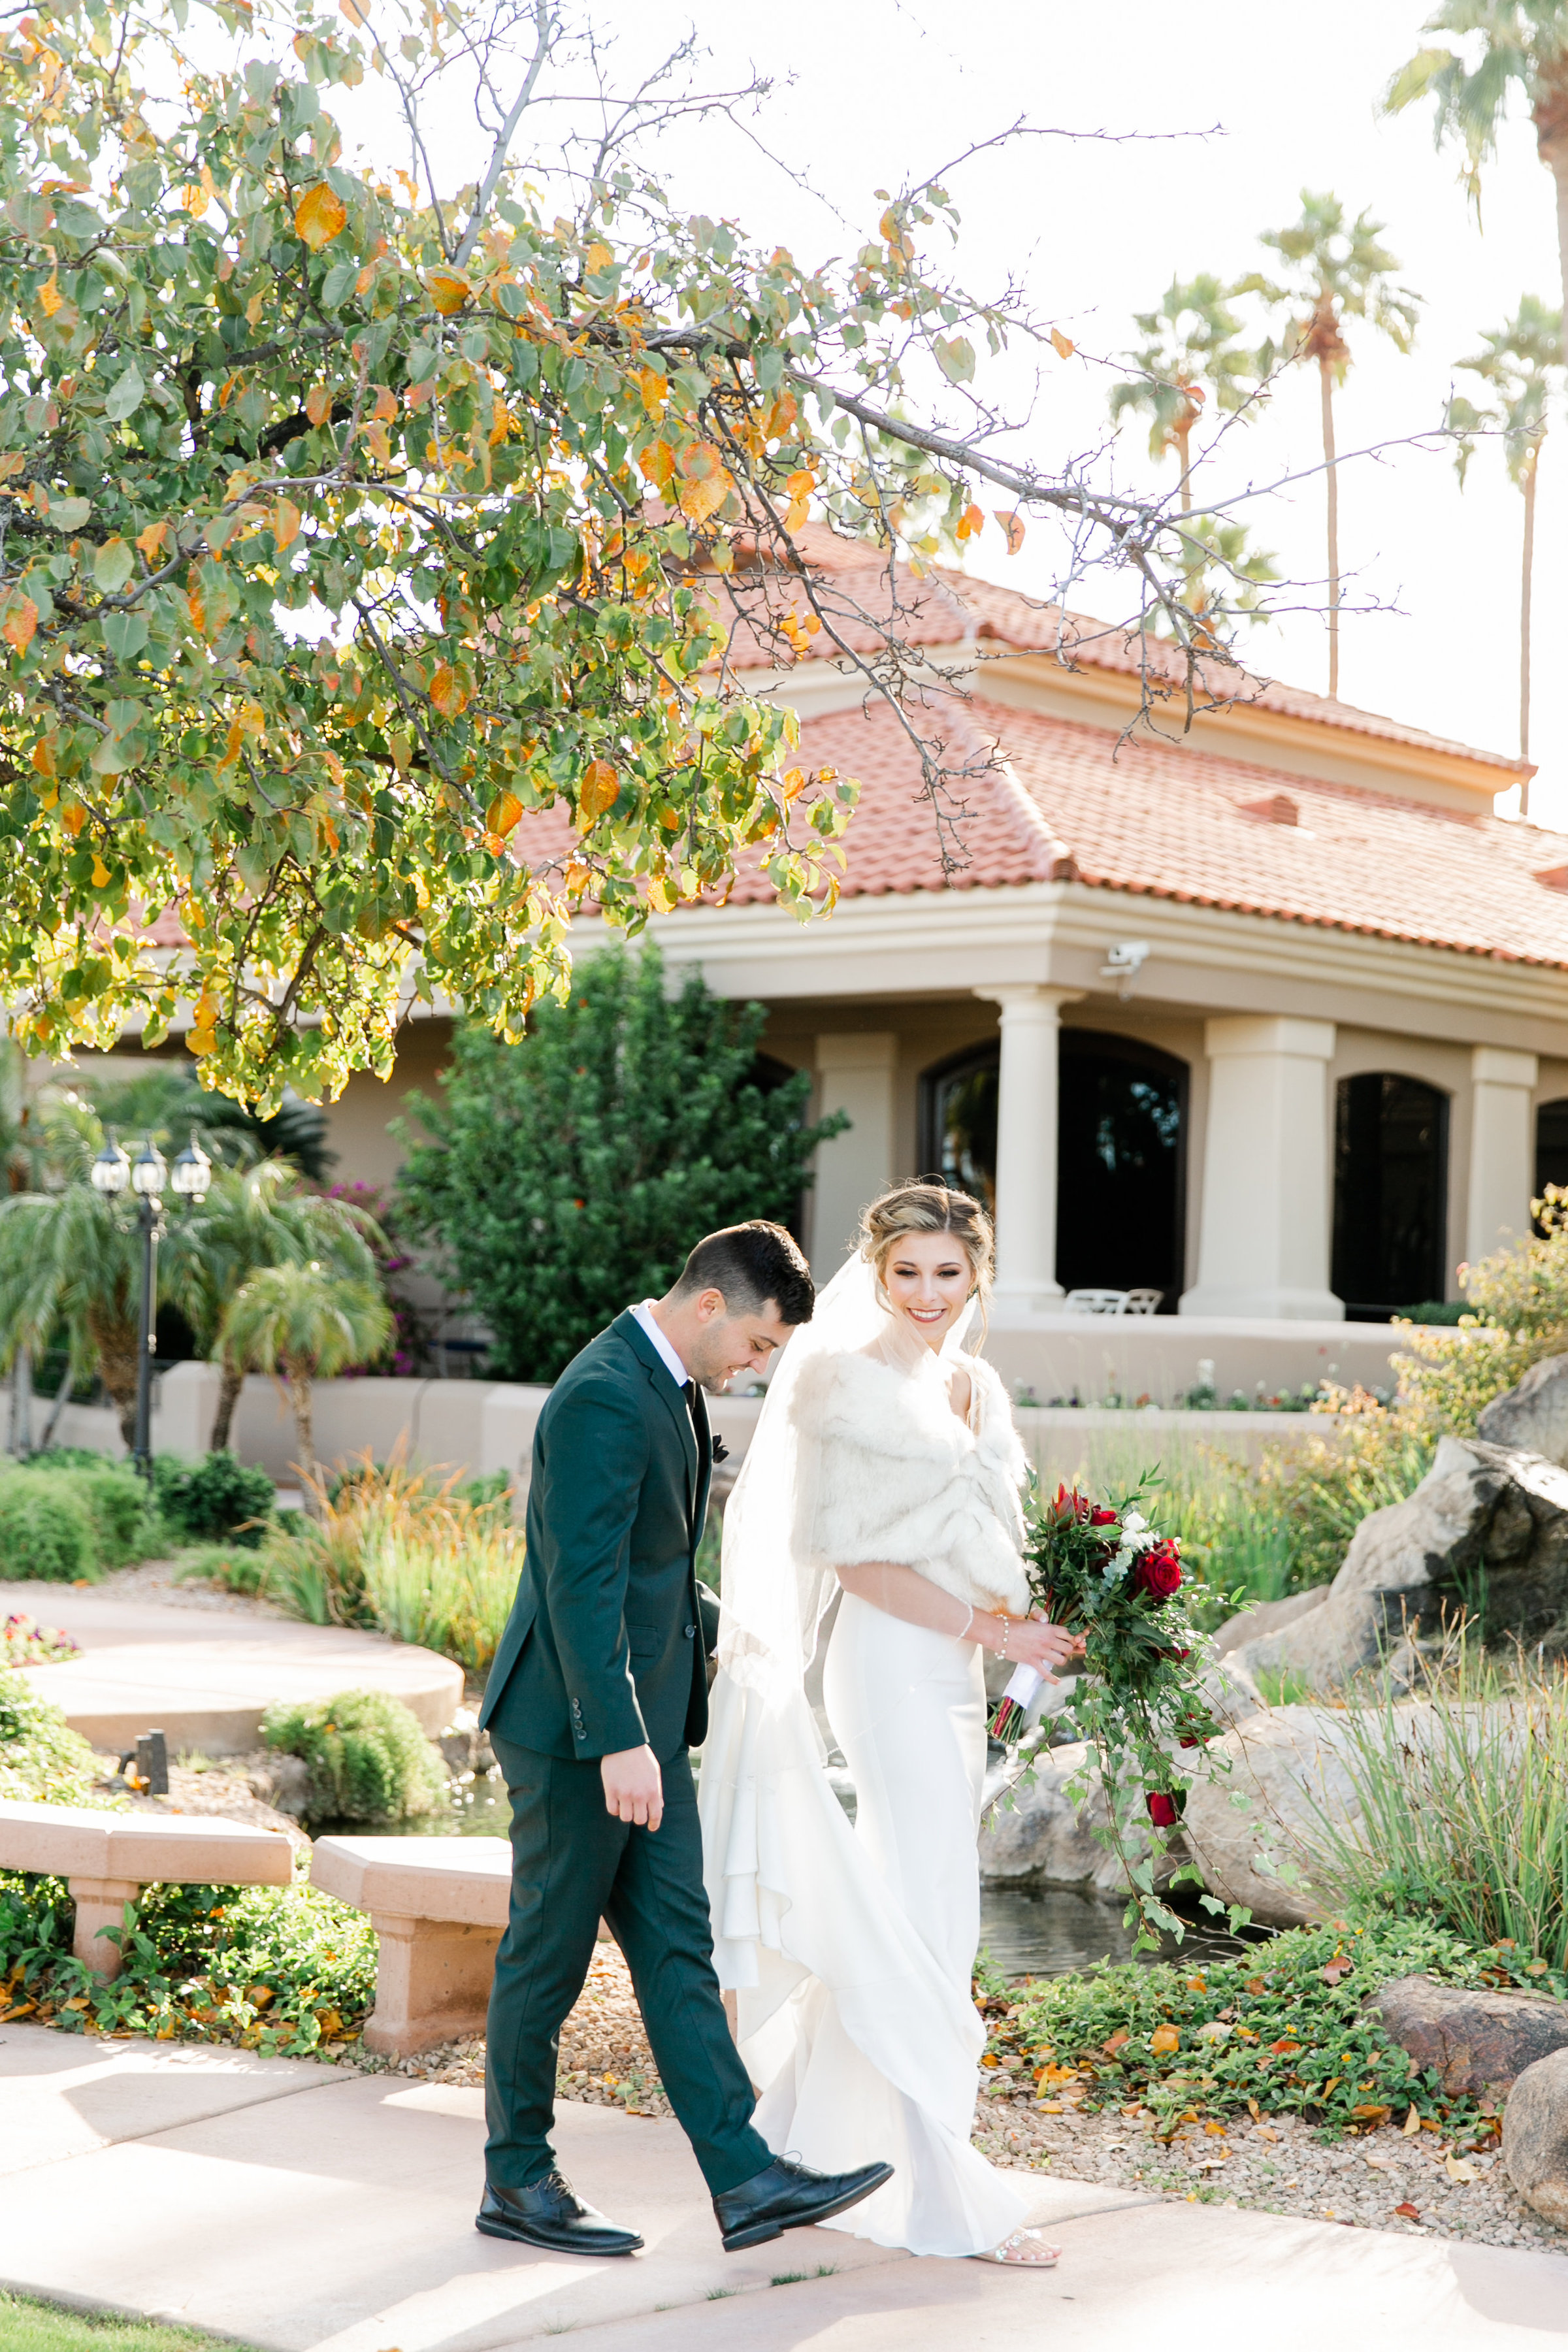 Karlie Colleen Photography - Gilbert Arizona Wedding - Val Vista Lakes - Brynne & Josh-441